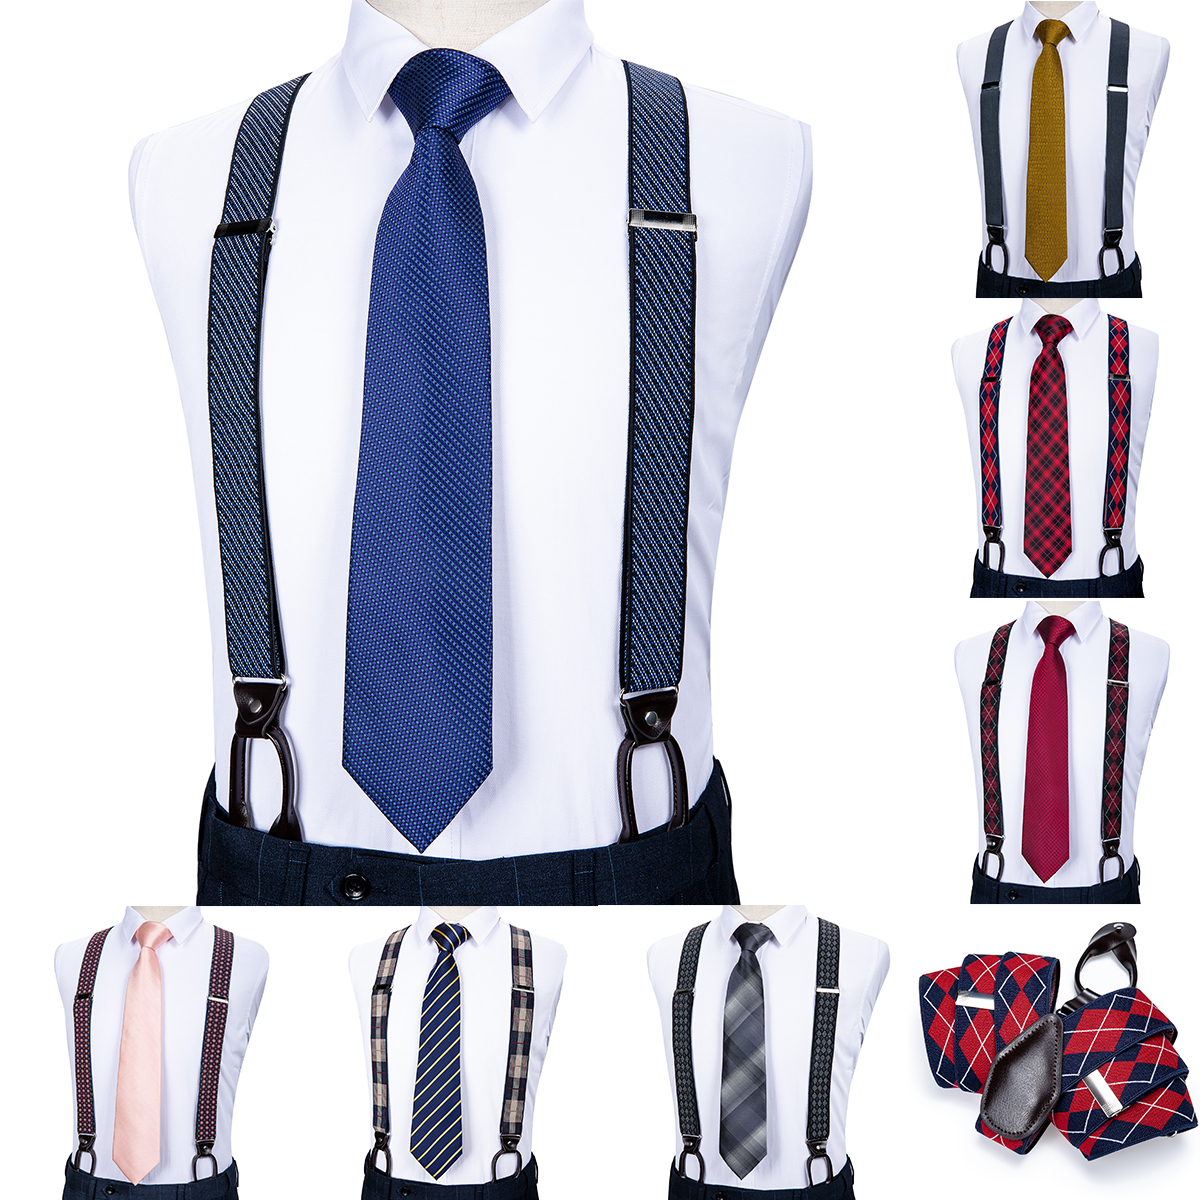 DiBanGu Men Suspender Elastic Leather 6PCS Button Braces Vintage Men Women Suspenders For Skirt Trousers Wedding Suspensorio